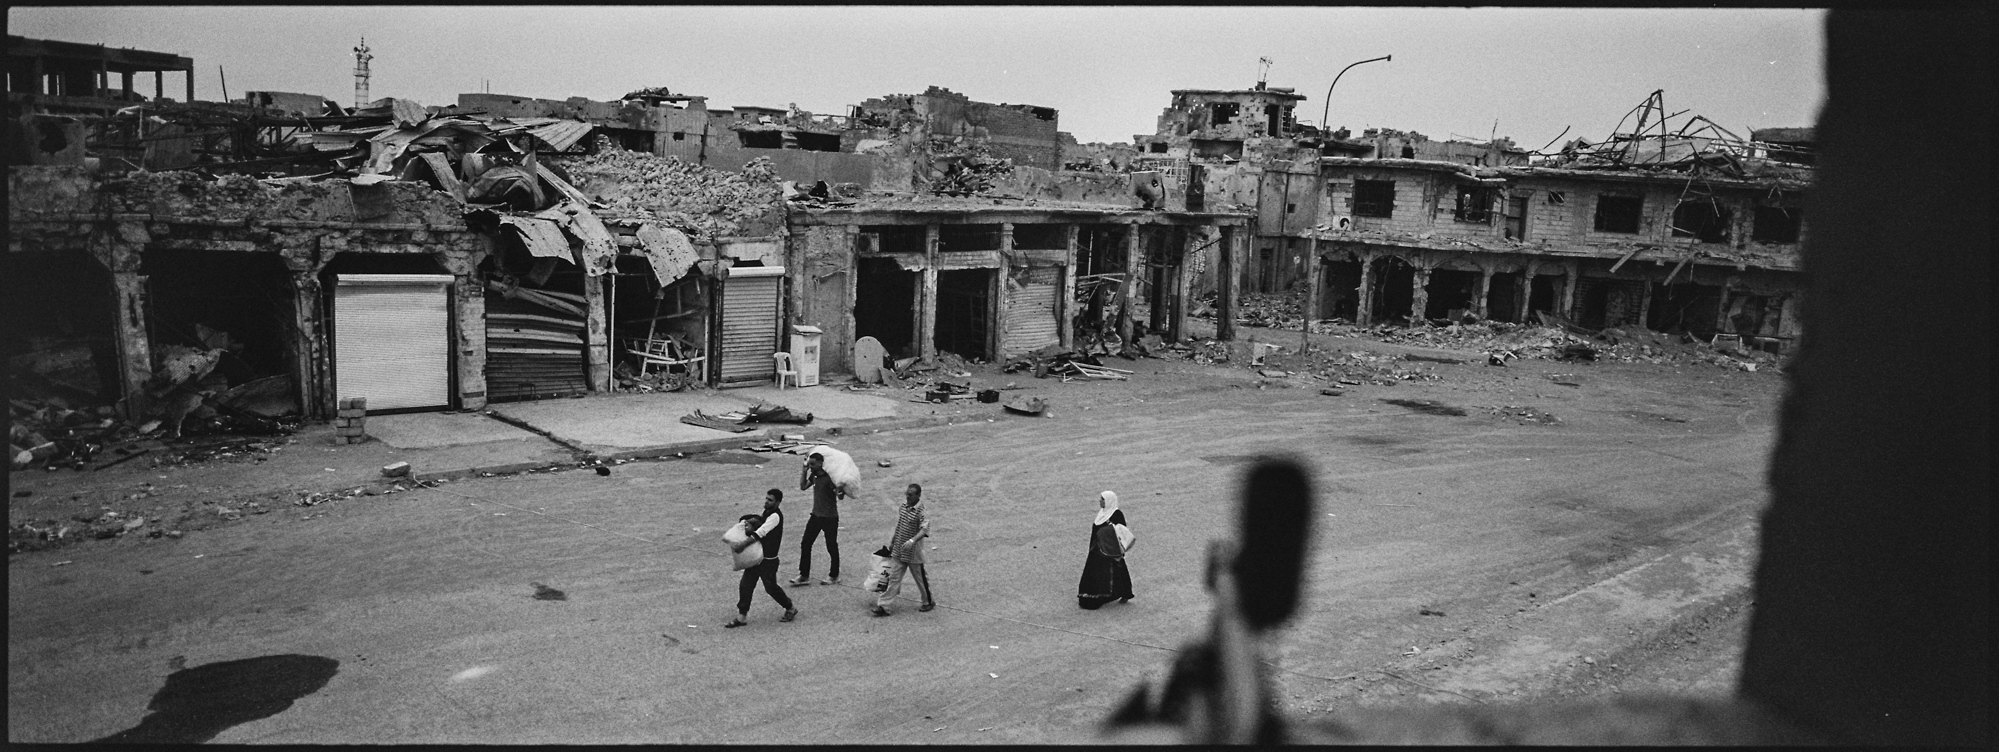 The Old City, Mosul. 2017.